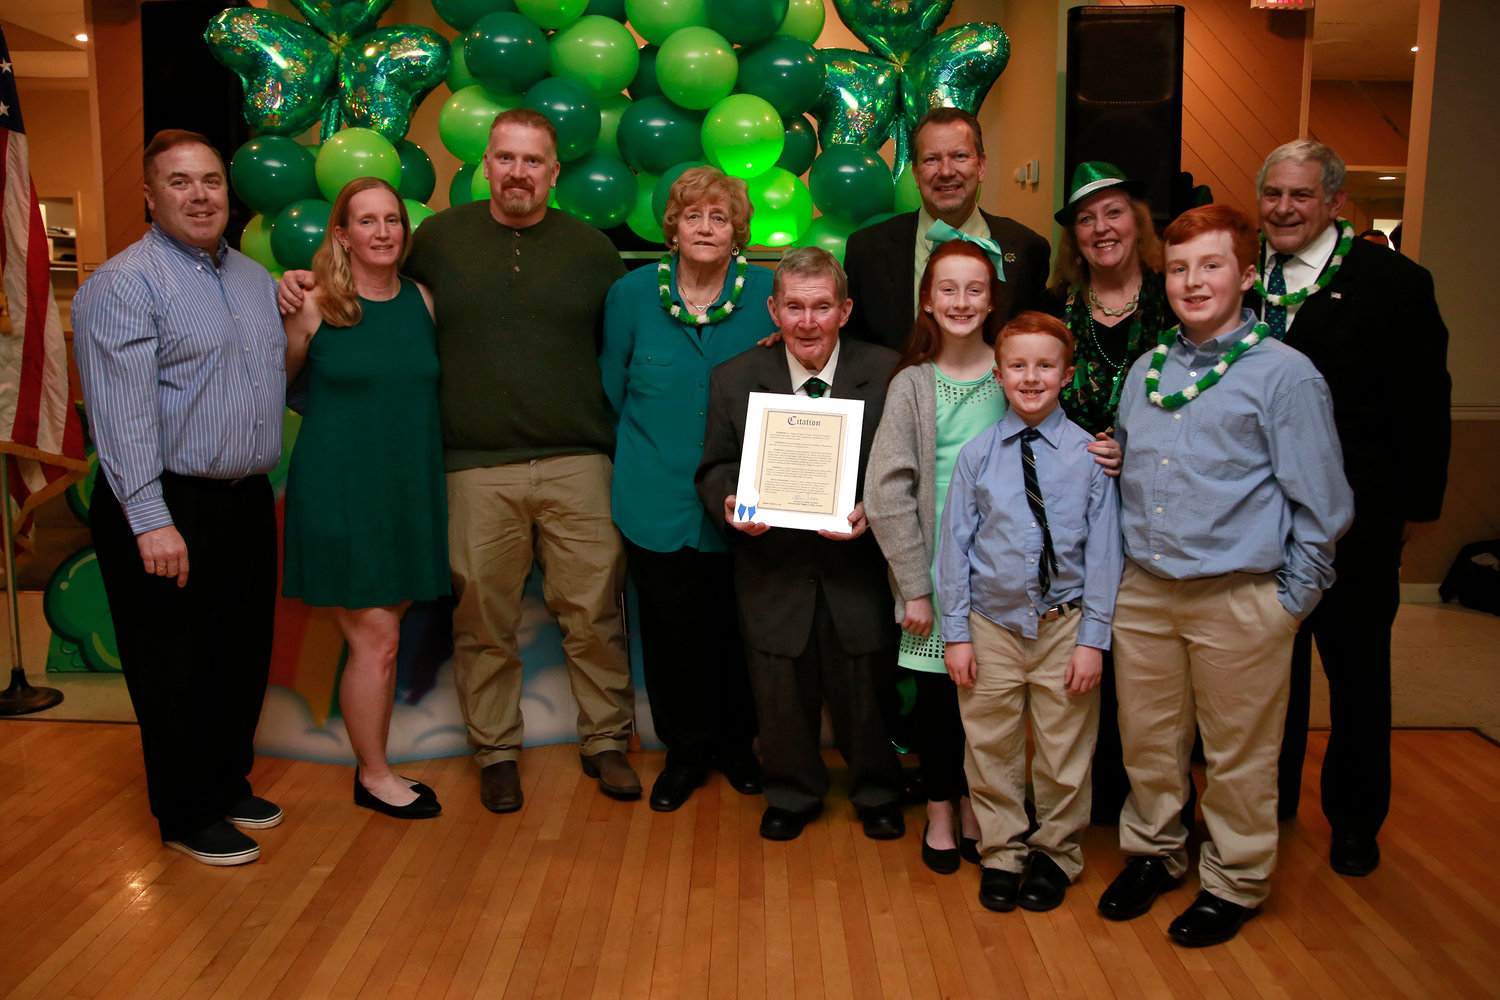 Honoree Edward Buckley of Buckley's and his wife Dolores, center, with their children, grandchildren and local officials at the Valley Stream American Legion on March 8.